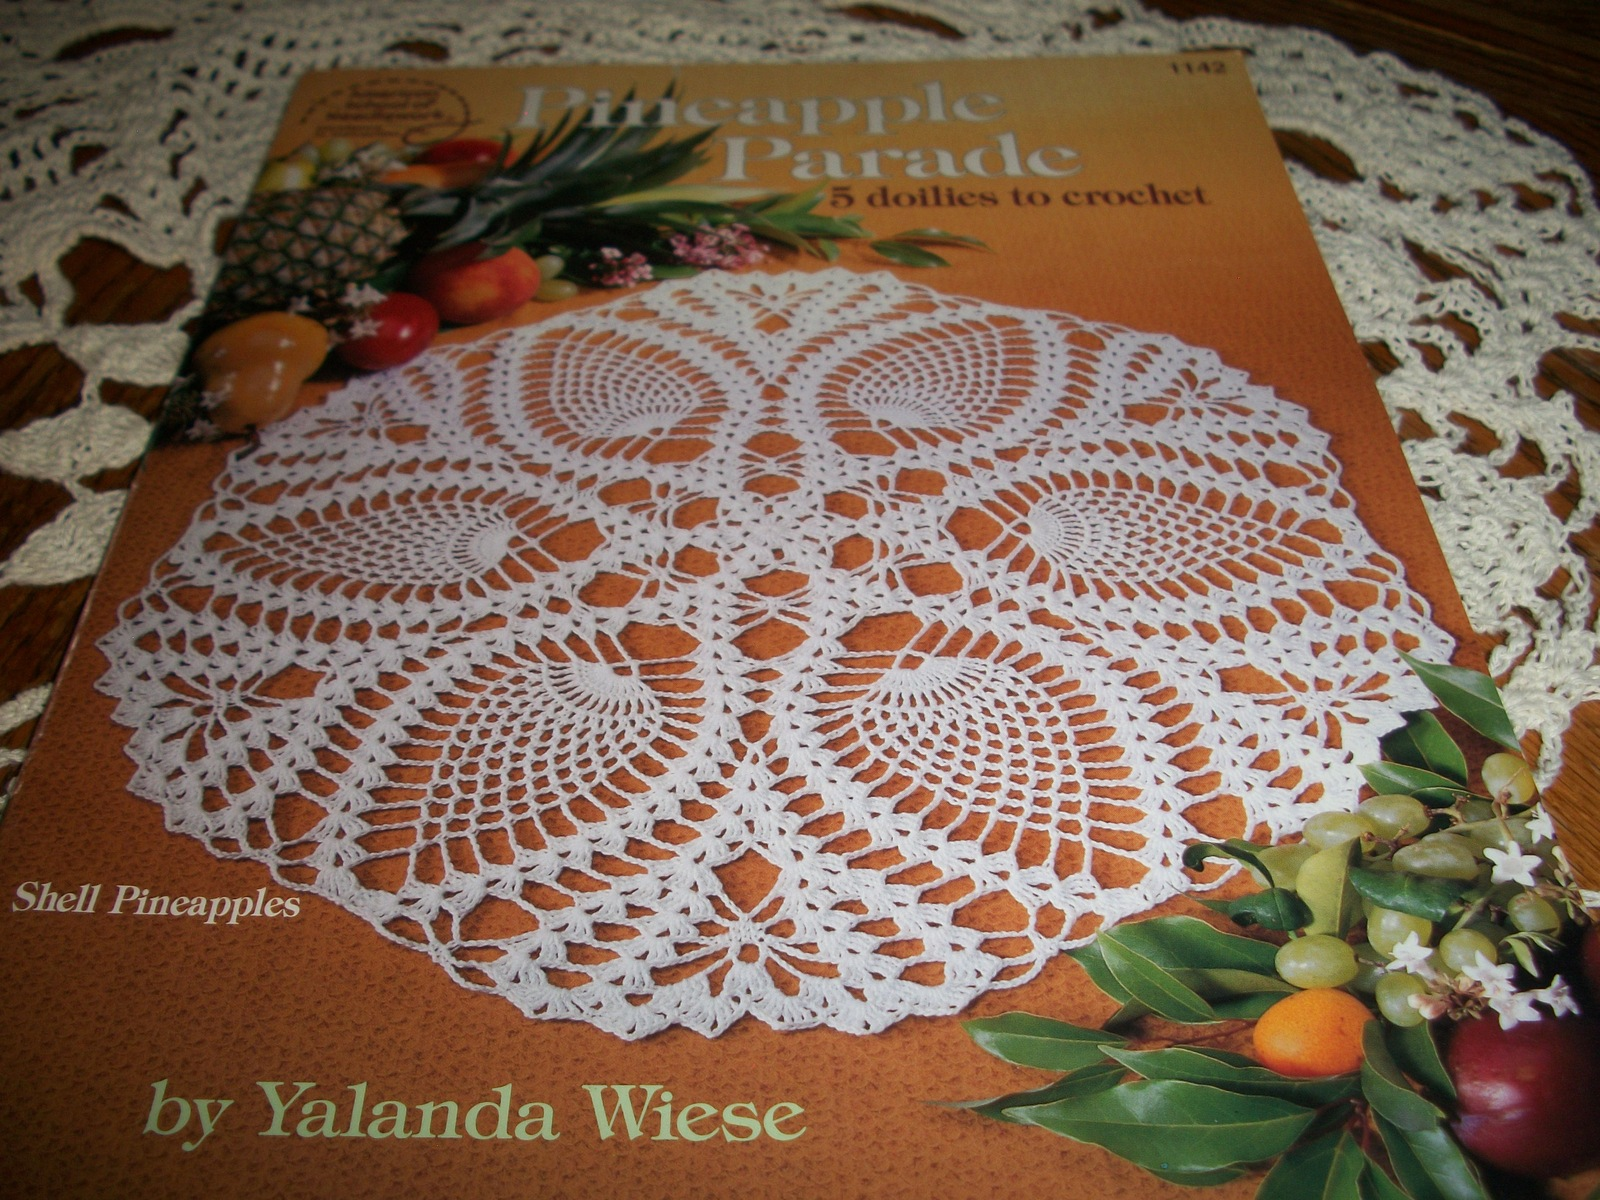 Primary image for Pineapple Parade: 5 Doilies to Crochet #1142